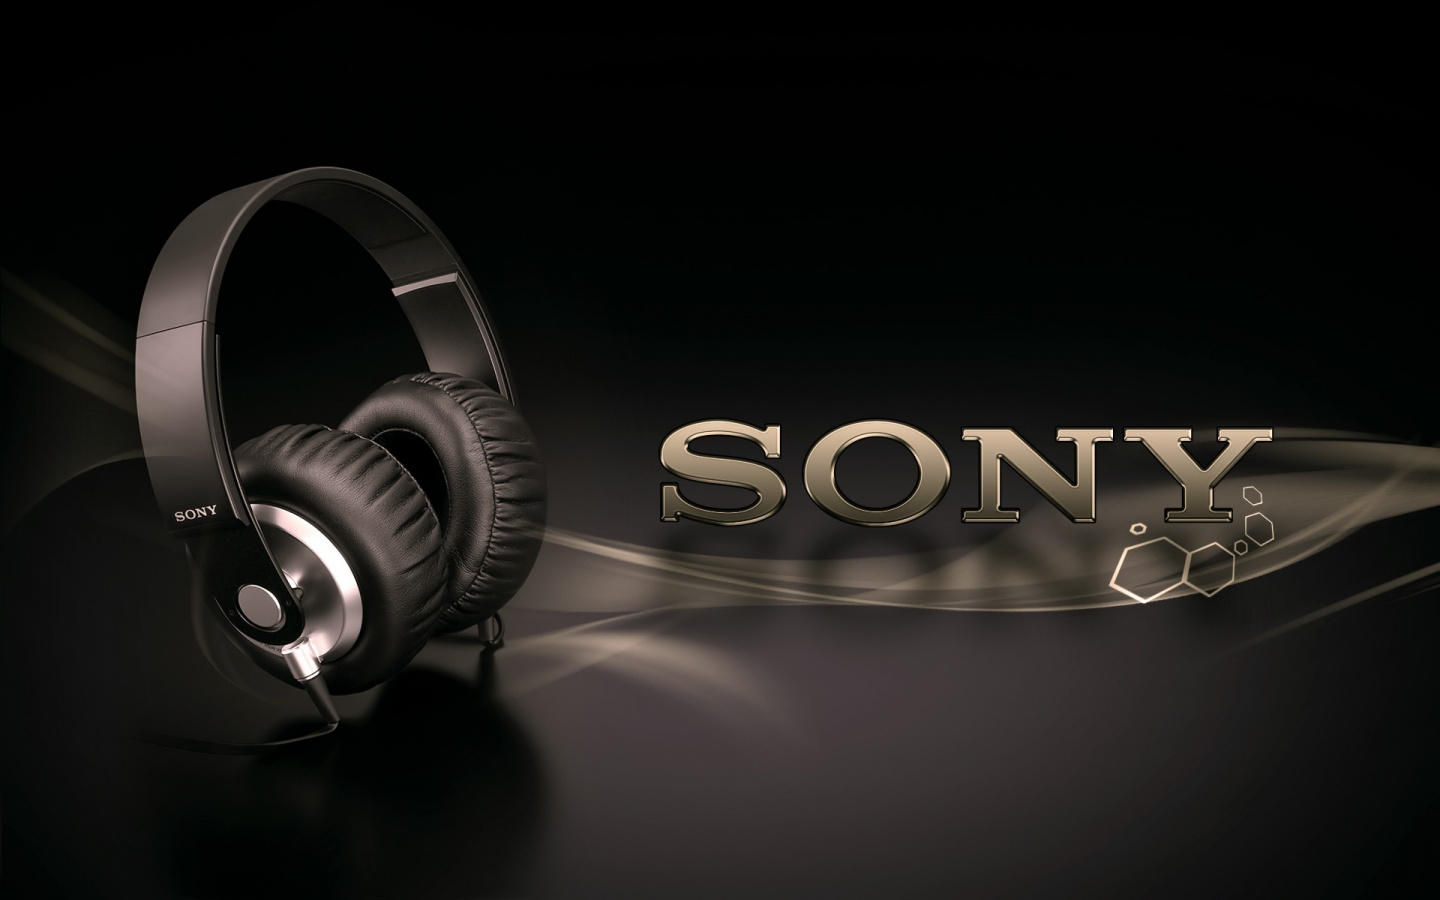 Sony Headphones Wallpaper